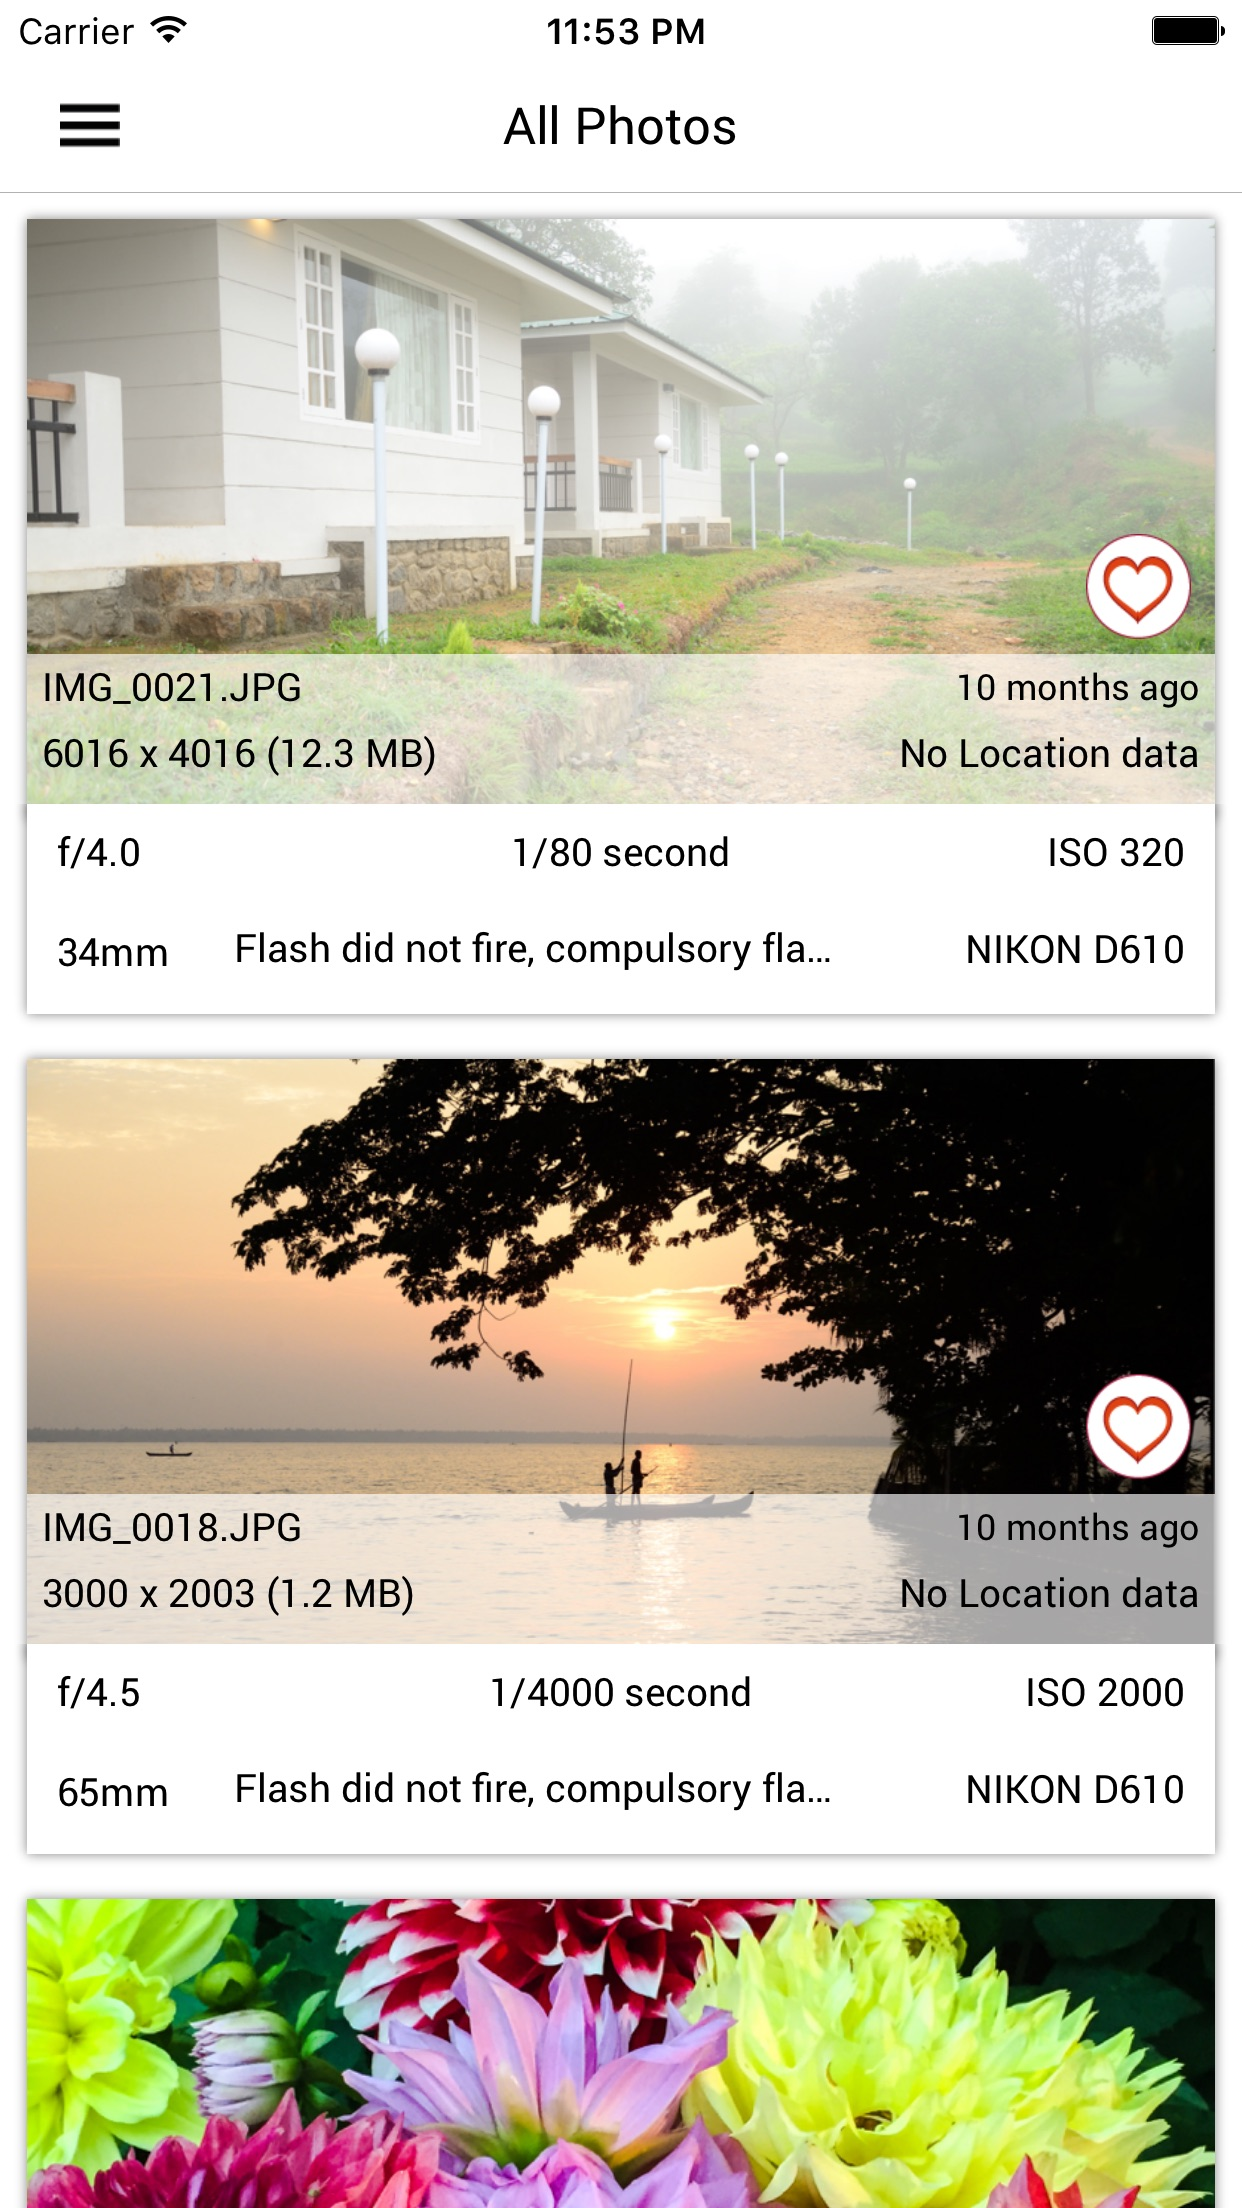 Exif Viewer by Fluntro 2.7 released for iOS - Displays EXIF Metadata Image